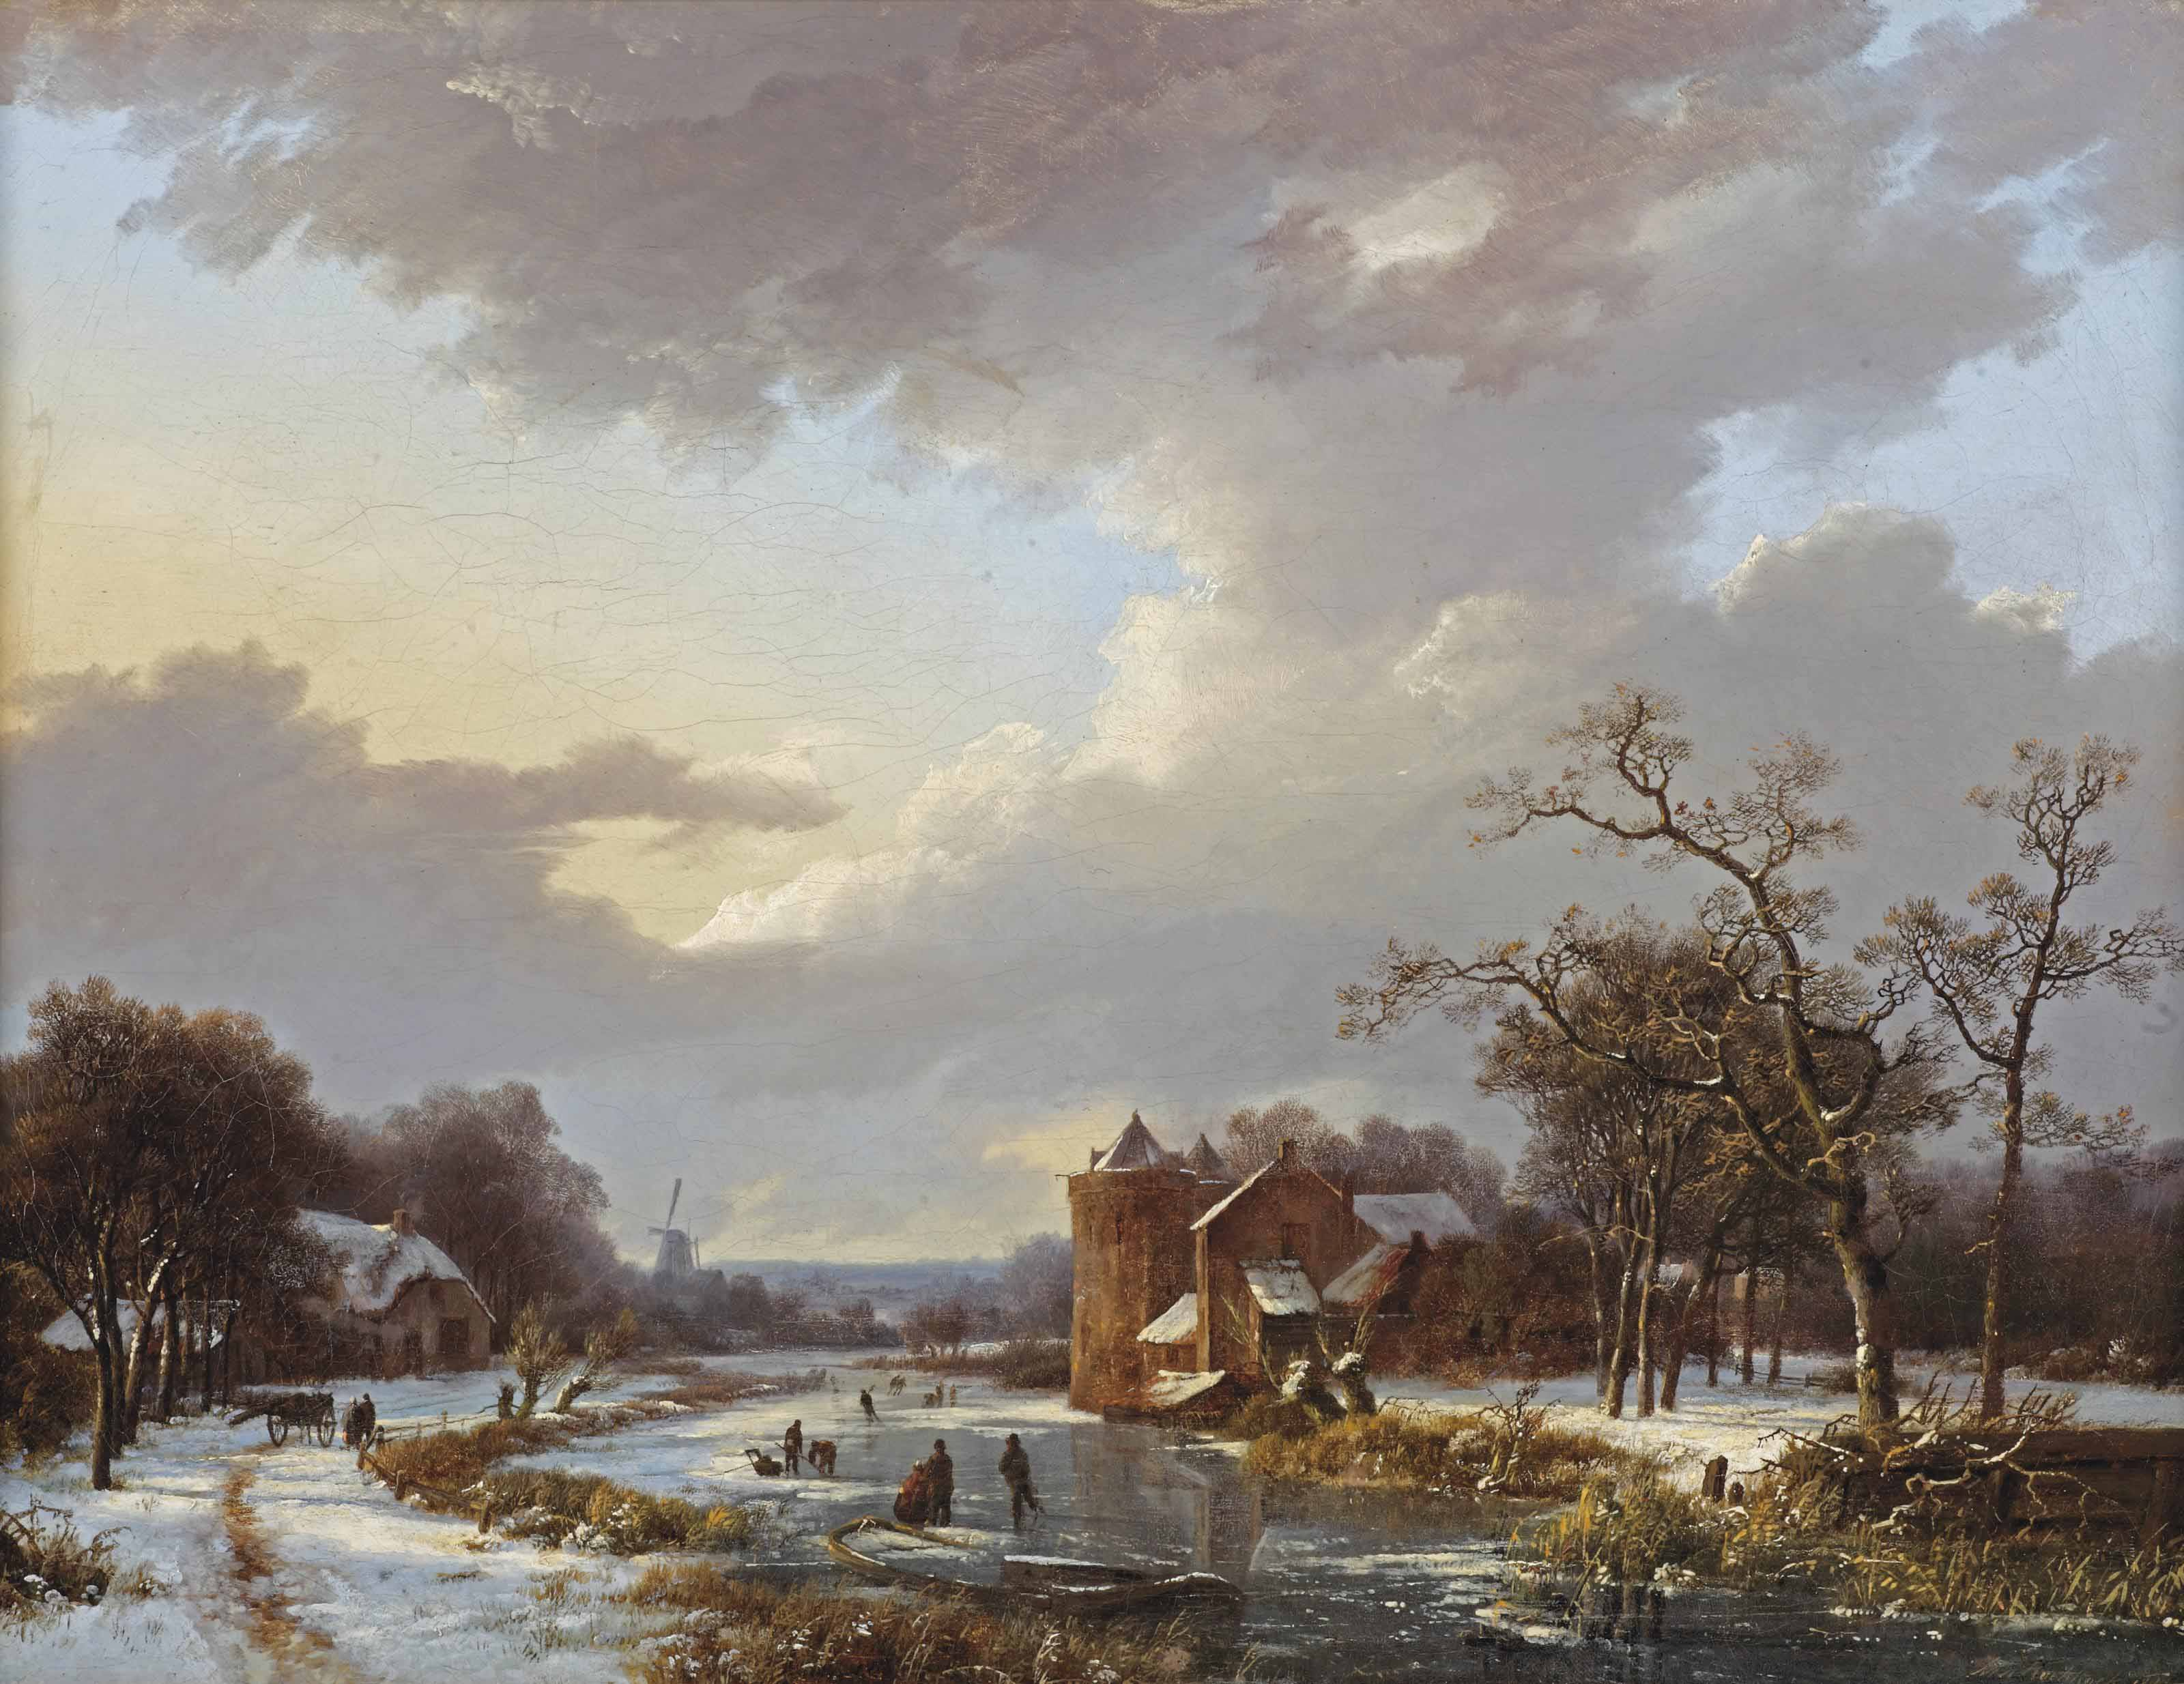 A winter scene with figures on a frozen waterway by a castle